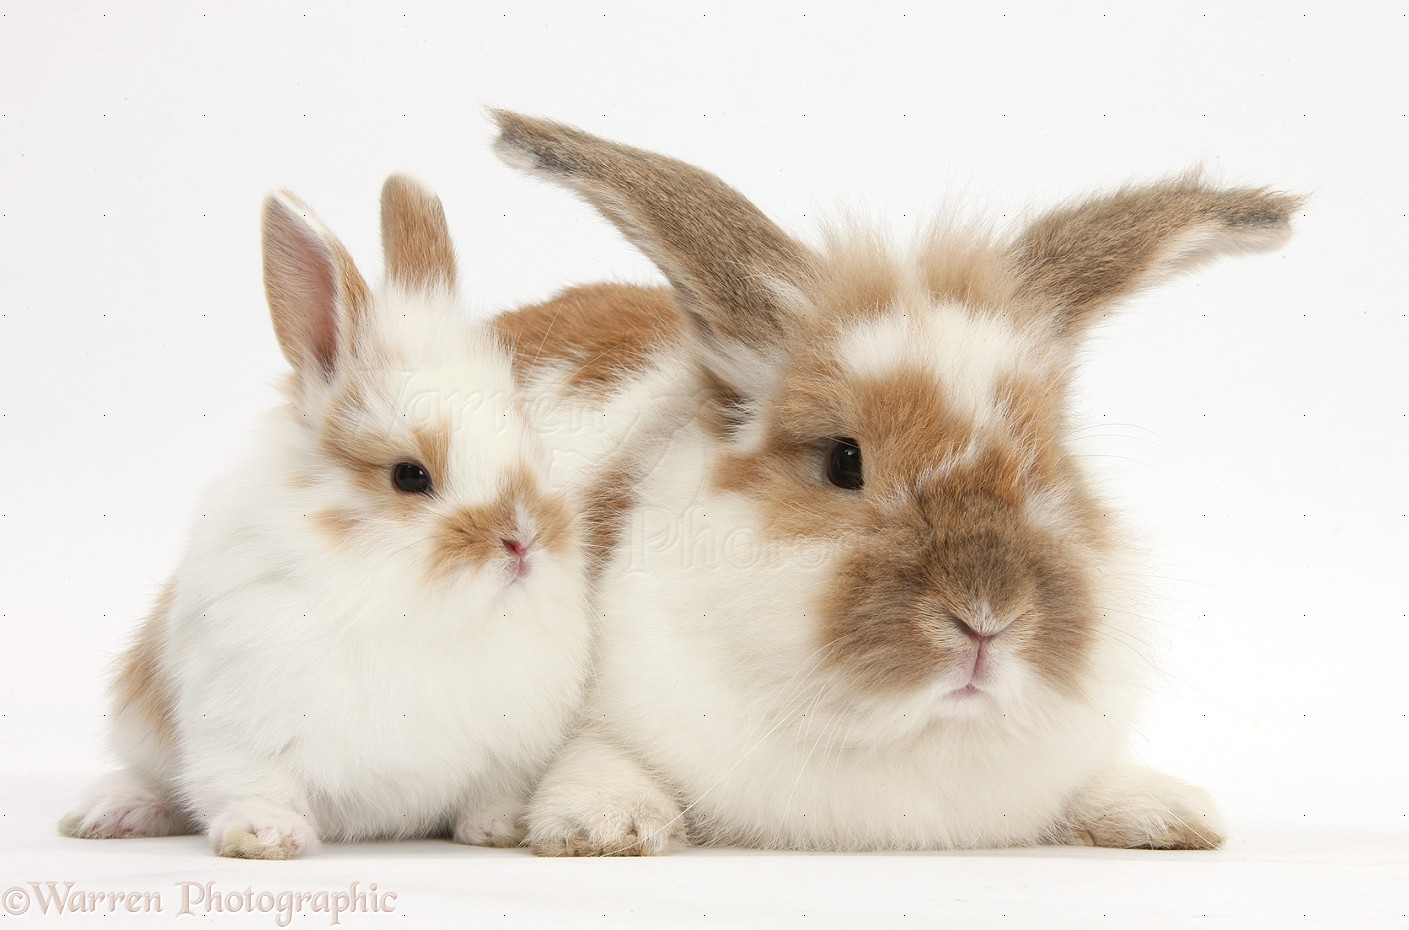 Brown and white lionhead rabbit - photo#7